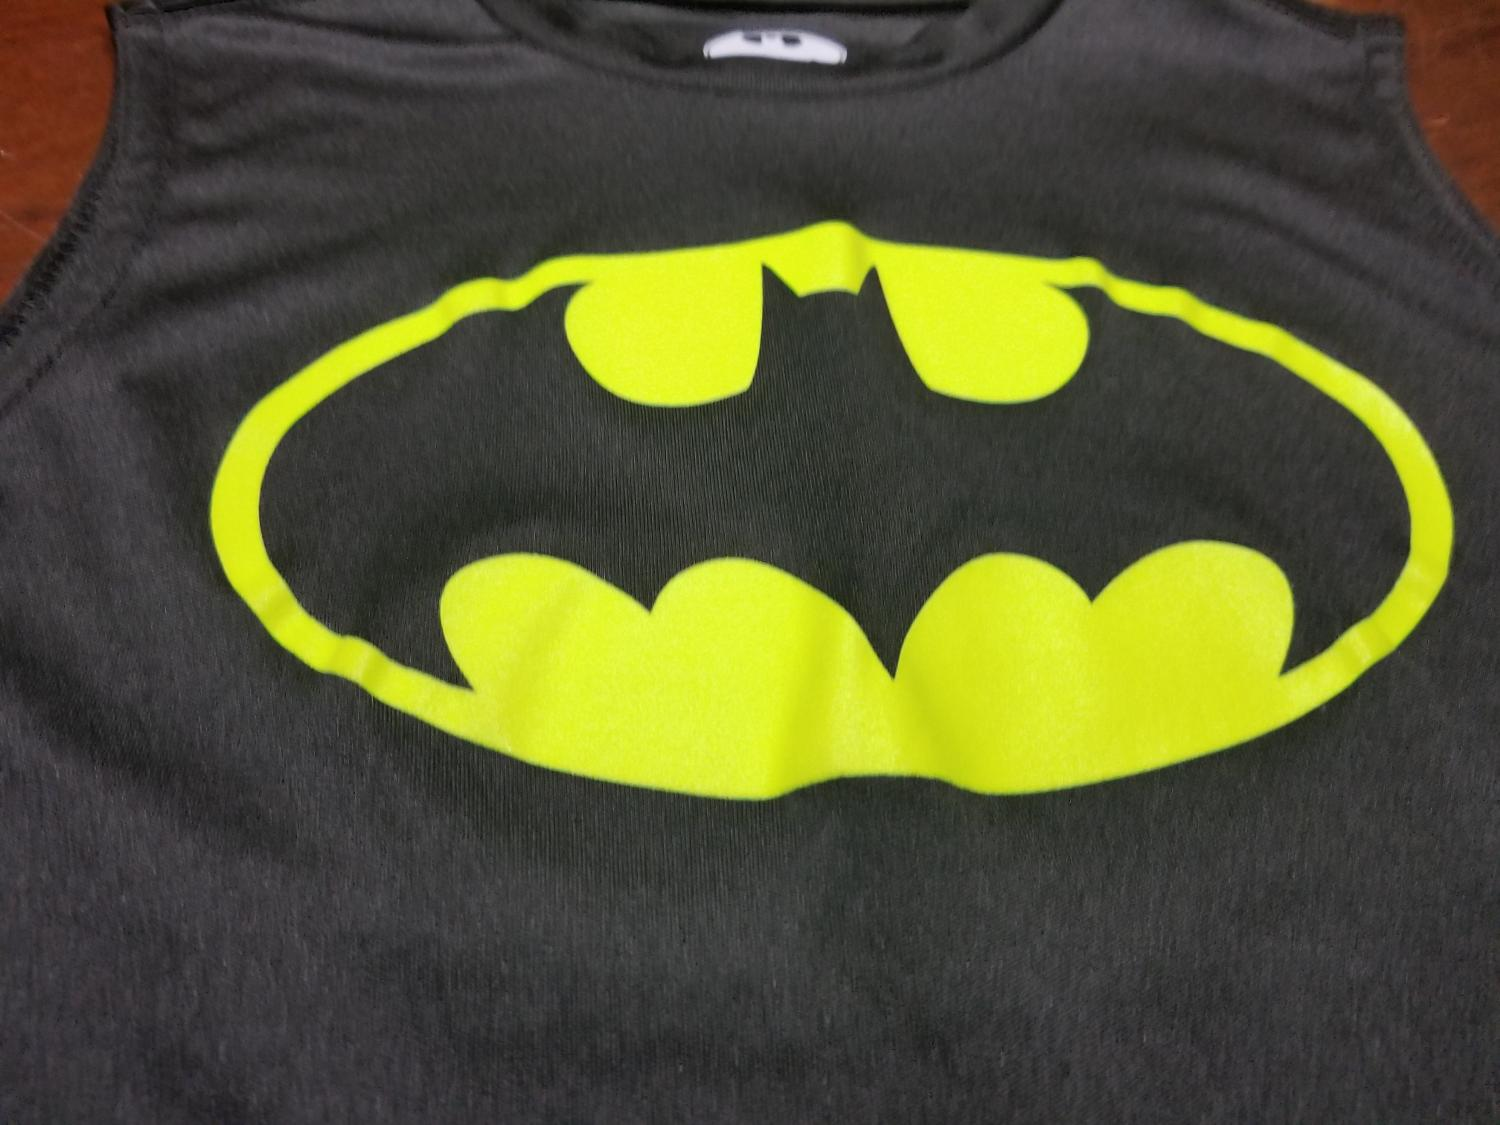 d89ebacf140c6 Find more Nwot Batman Silky Feel Tank Top Boys Size 6 7 for sale at ...